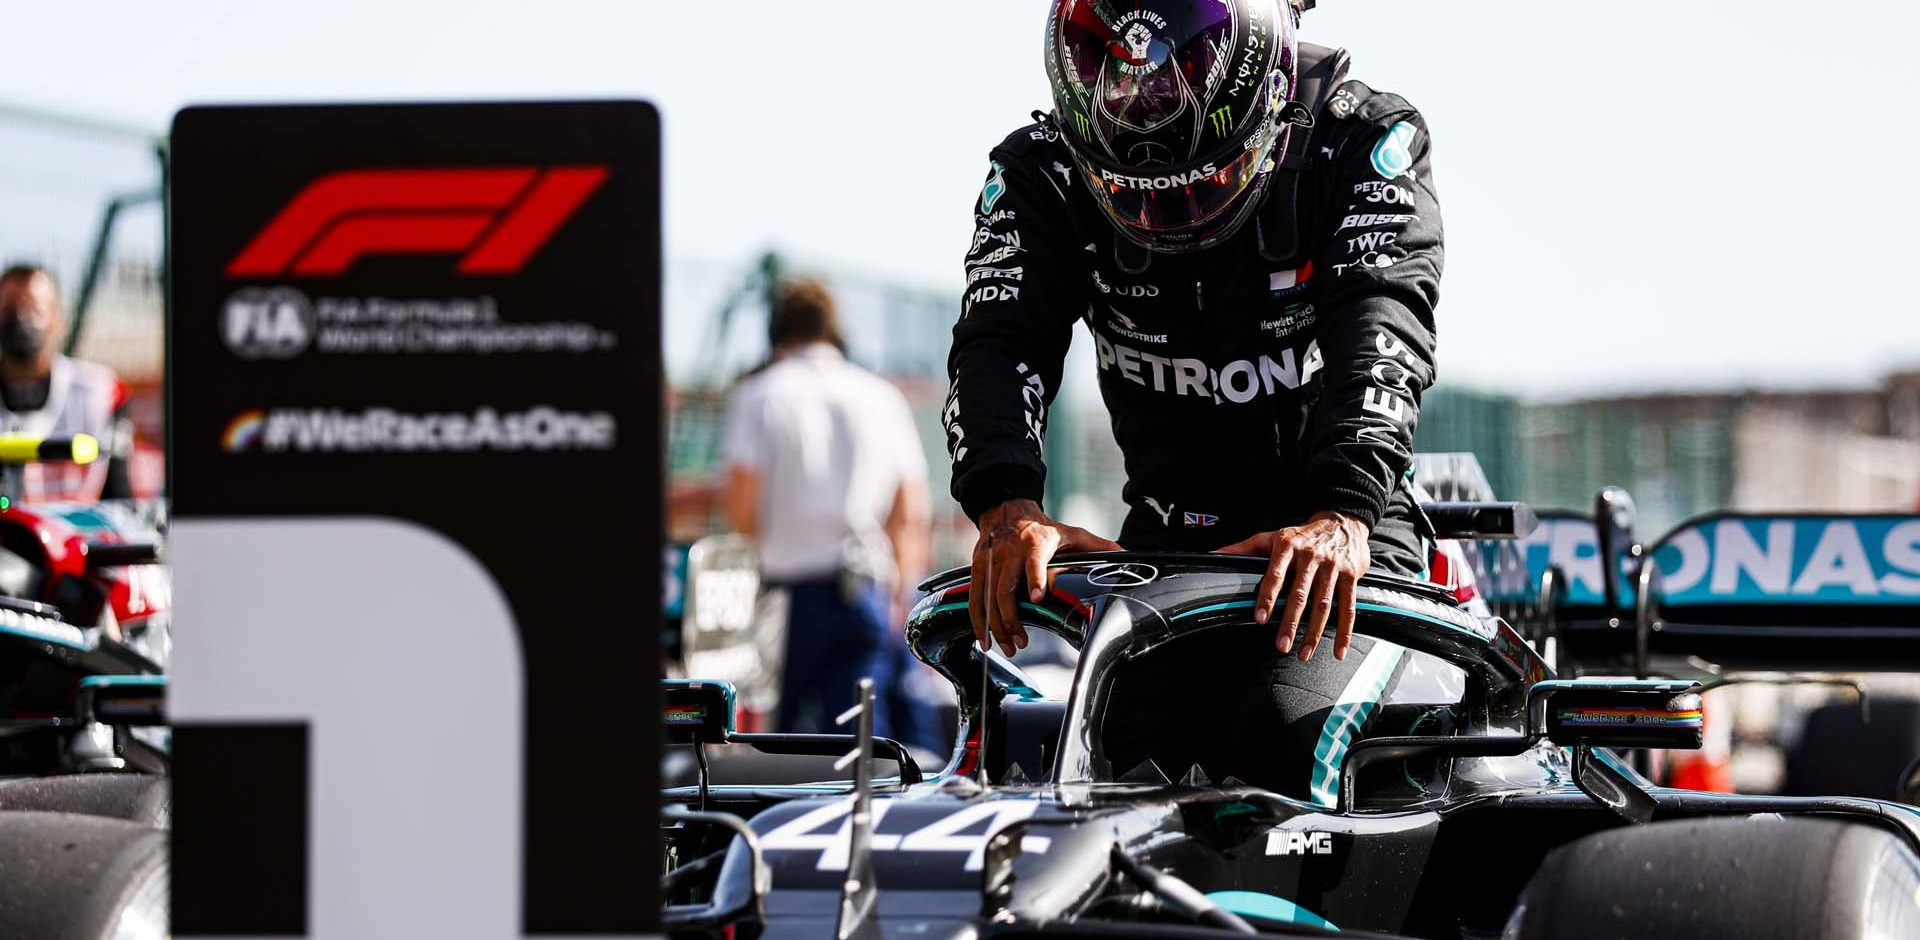 2020 Portuguese Grand Prix, Saturday - LAT Images Lewis Hamilton Mercedes